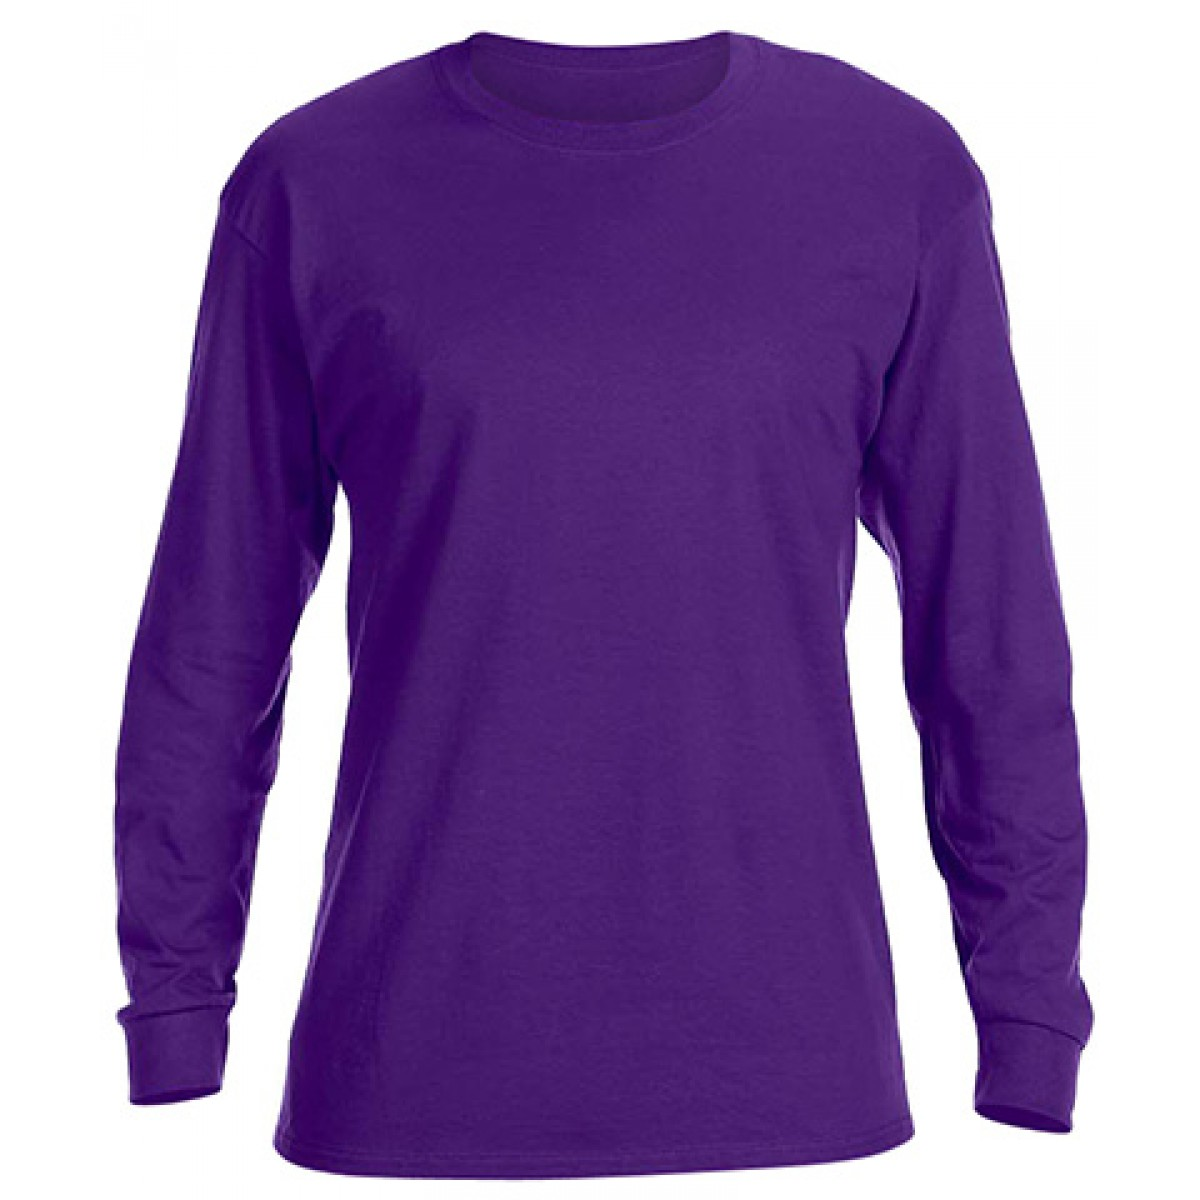 Basic Long Sleeve Crew Neck -Purple-YM